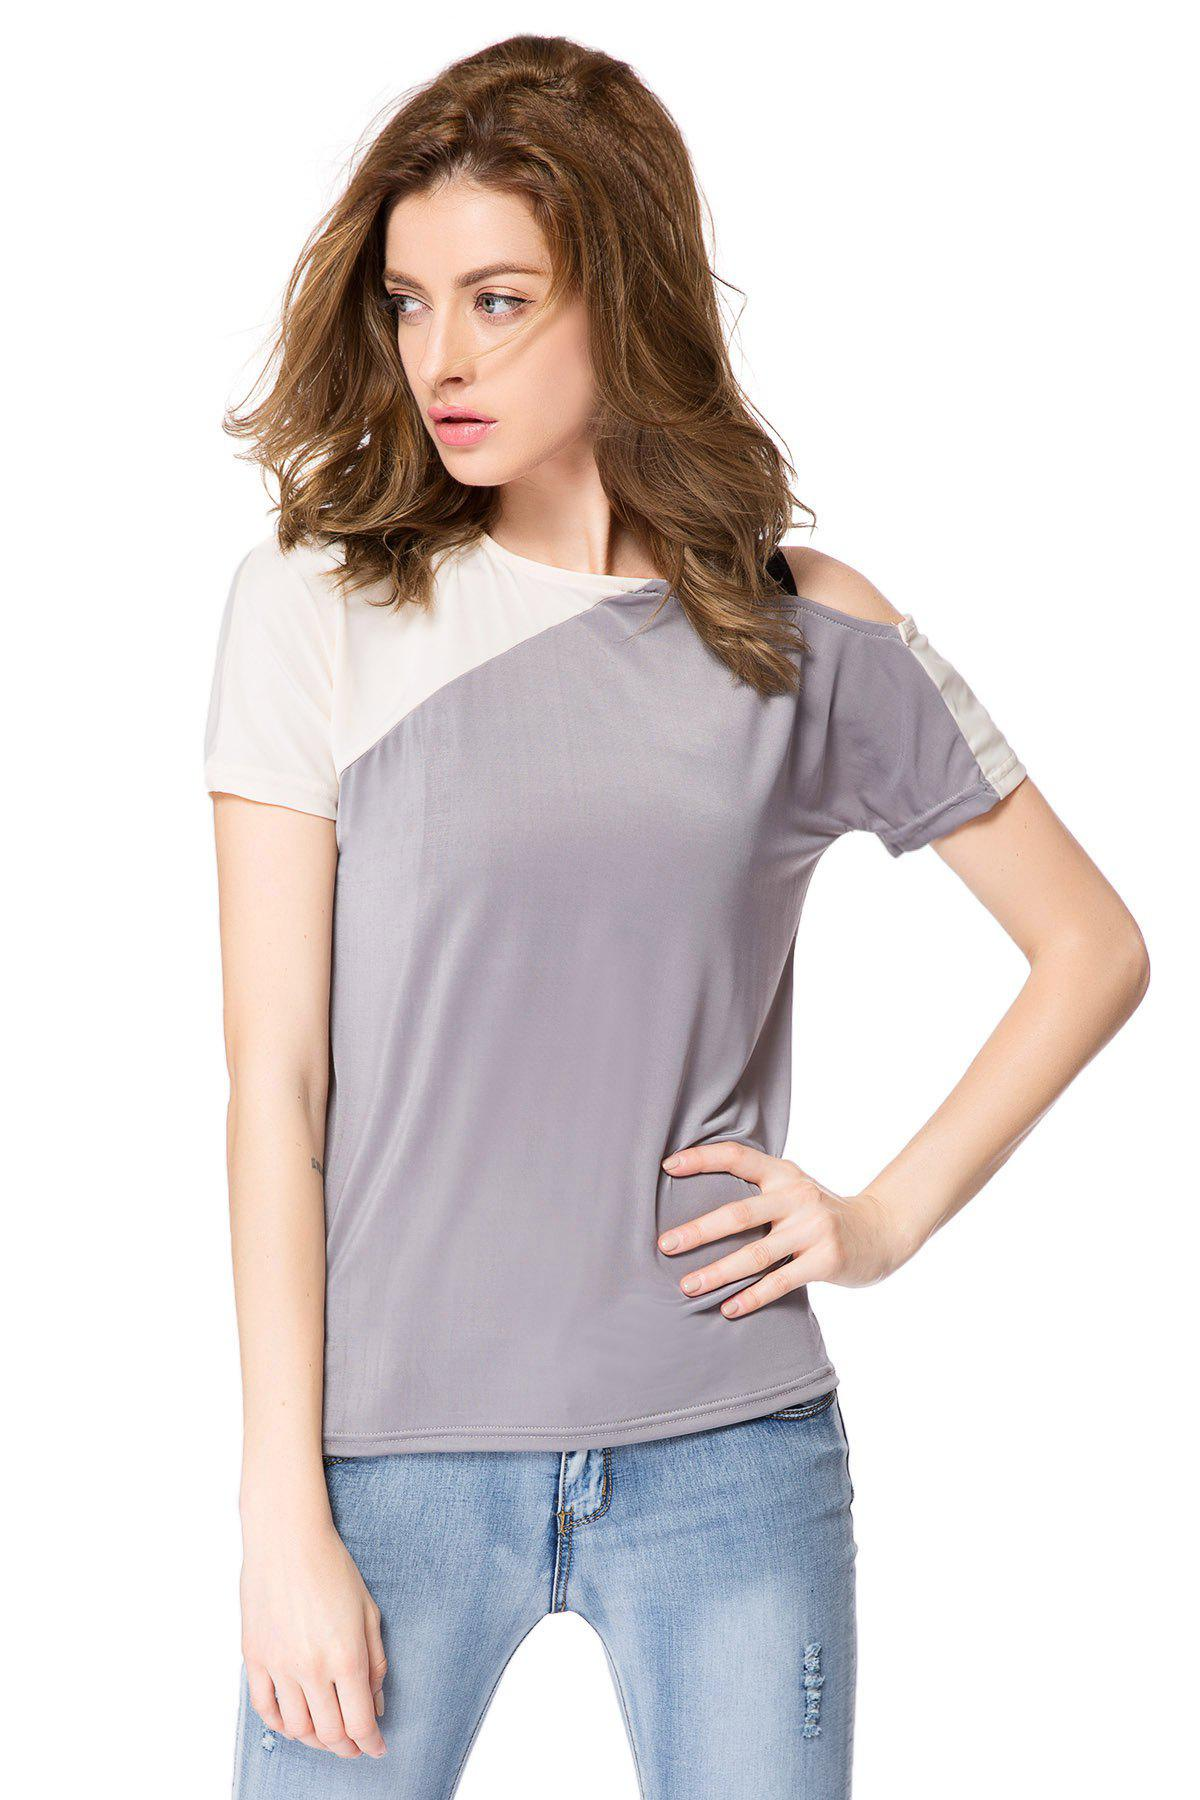 Stylish Jewel Neck Color Block Hollow Out Blouse For Women - AS THE PICTURE L